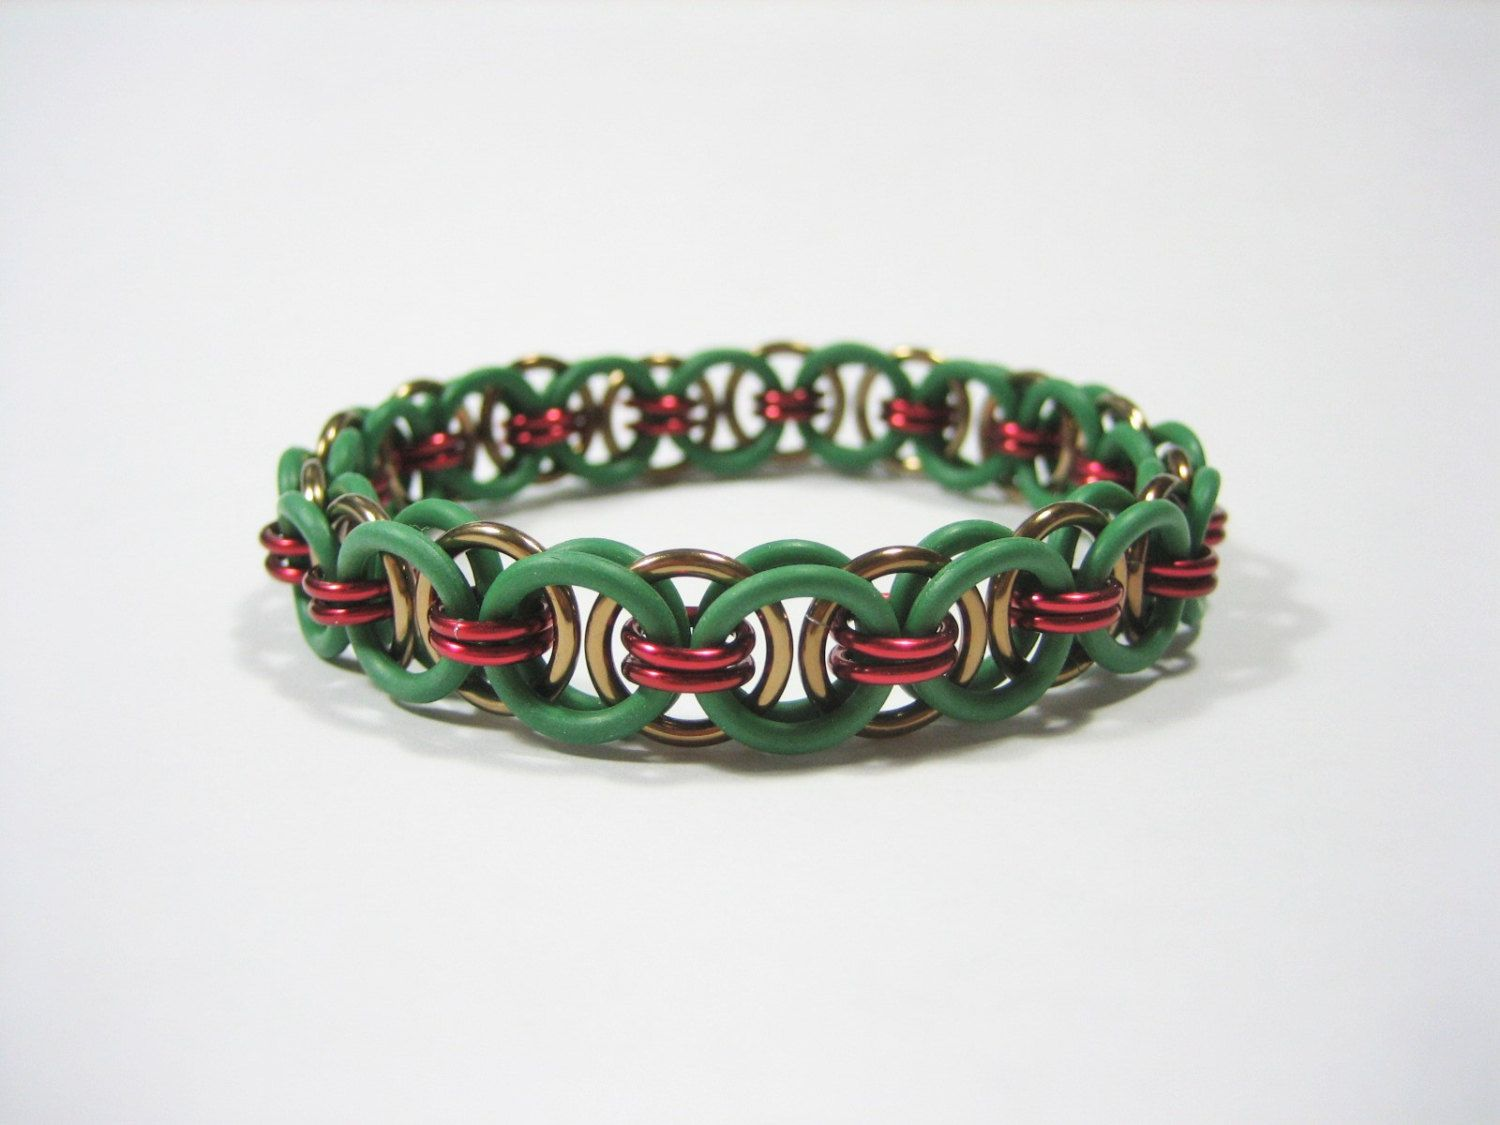 TMNT Themed Stretchy Chainmaille Bracelet (Raphael) - Helm (Parallel) Chain Weave by Sneath on Etsy